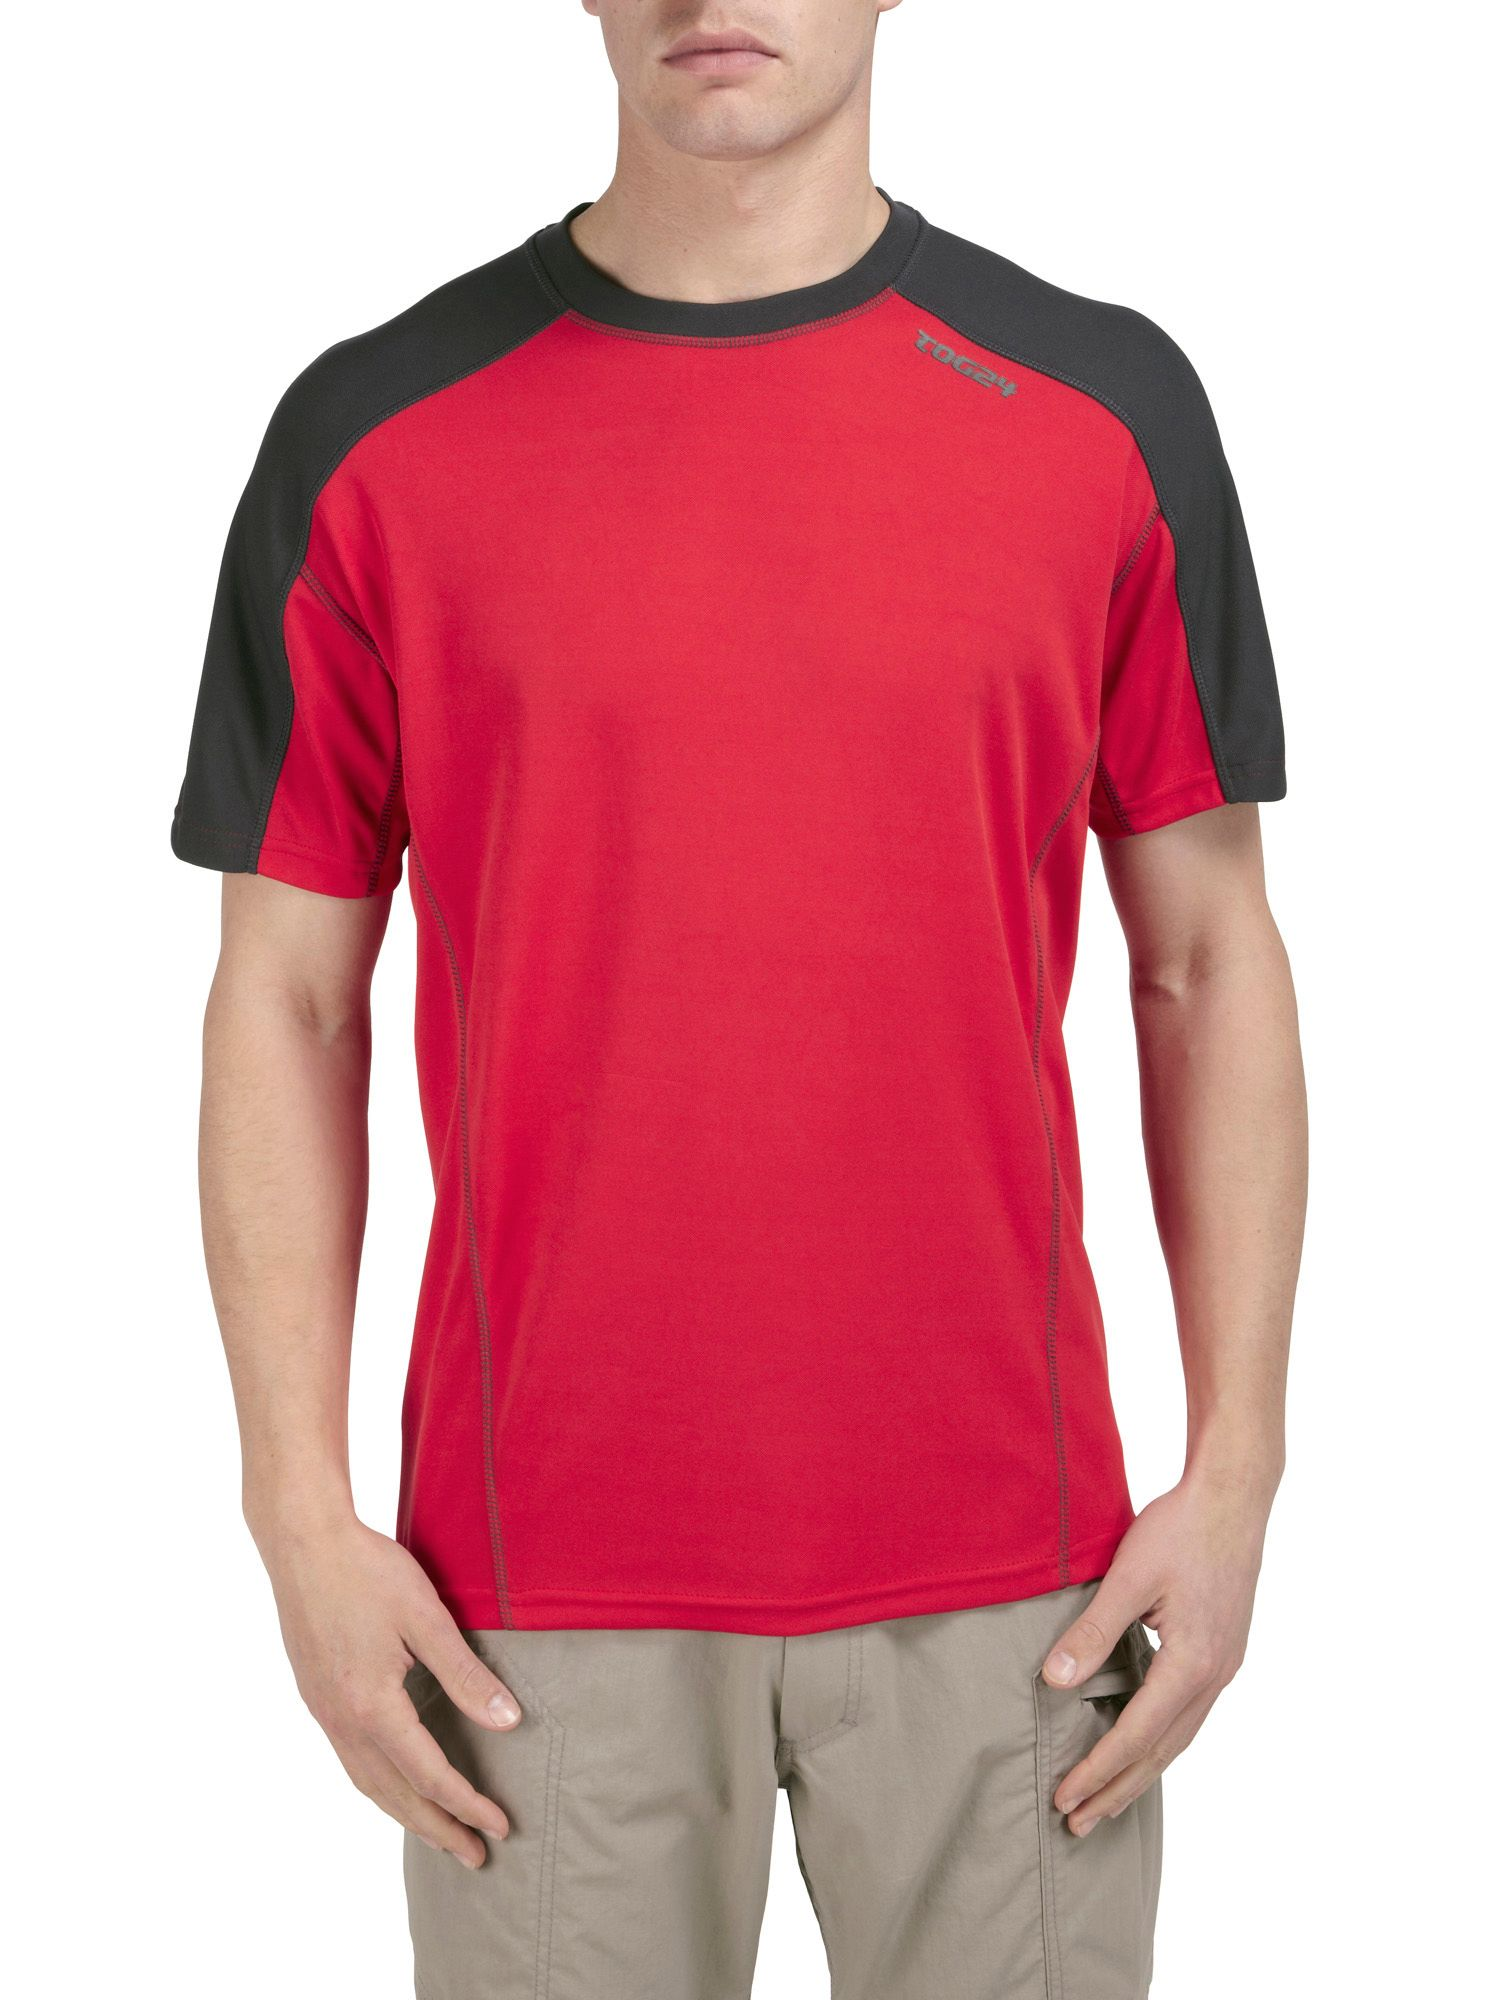 Bolt TCZ tech short sleeve t-shirt